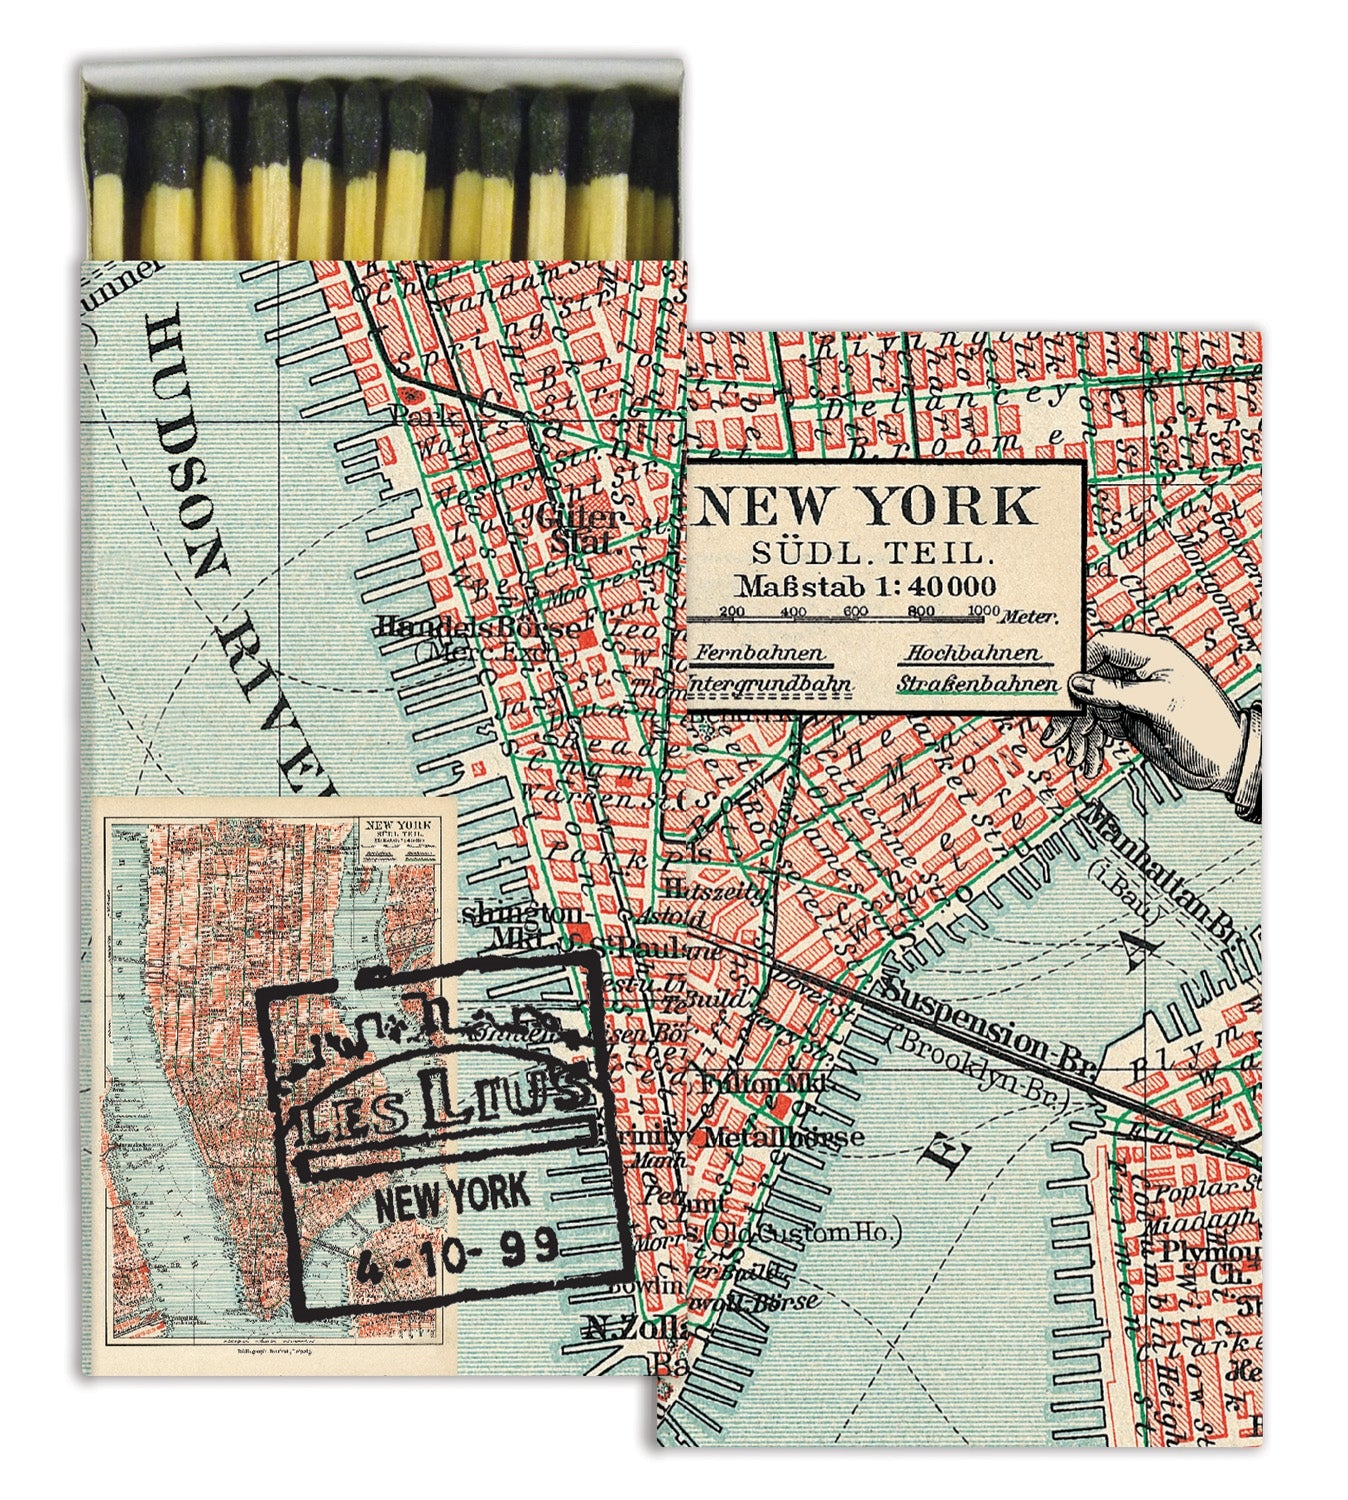 Matches - New York - CARLYLE AVENUE